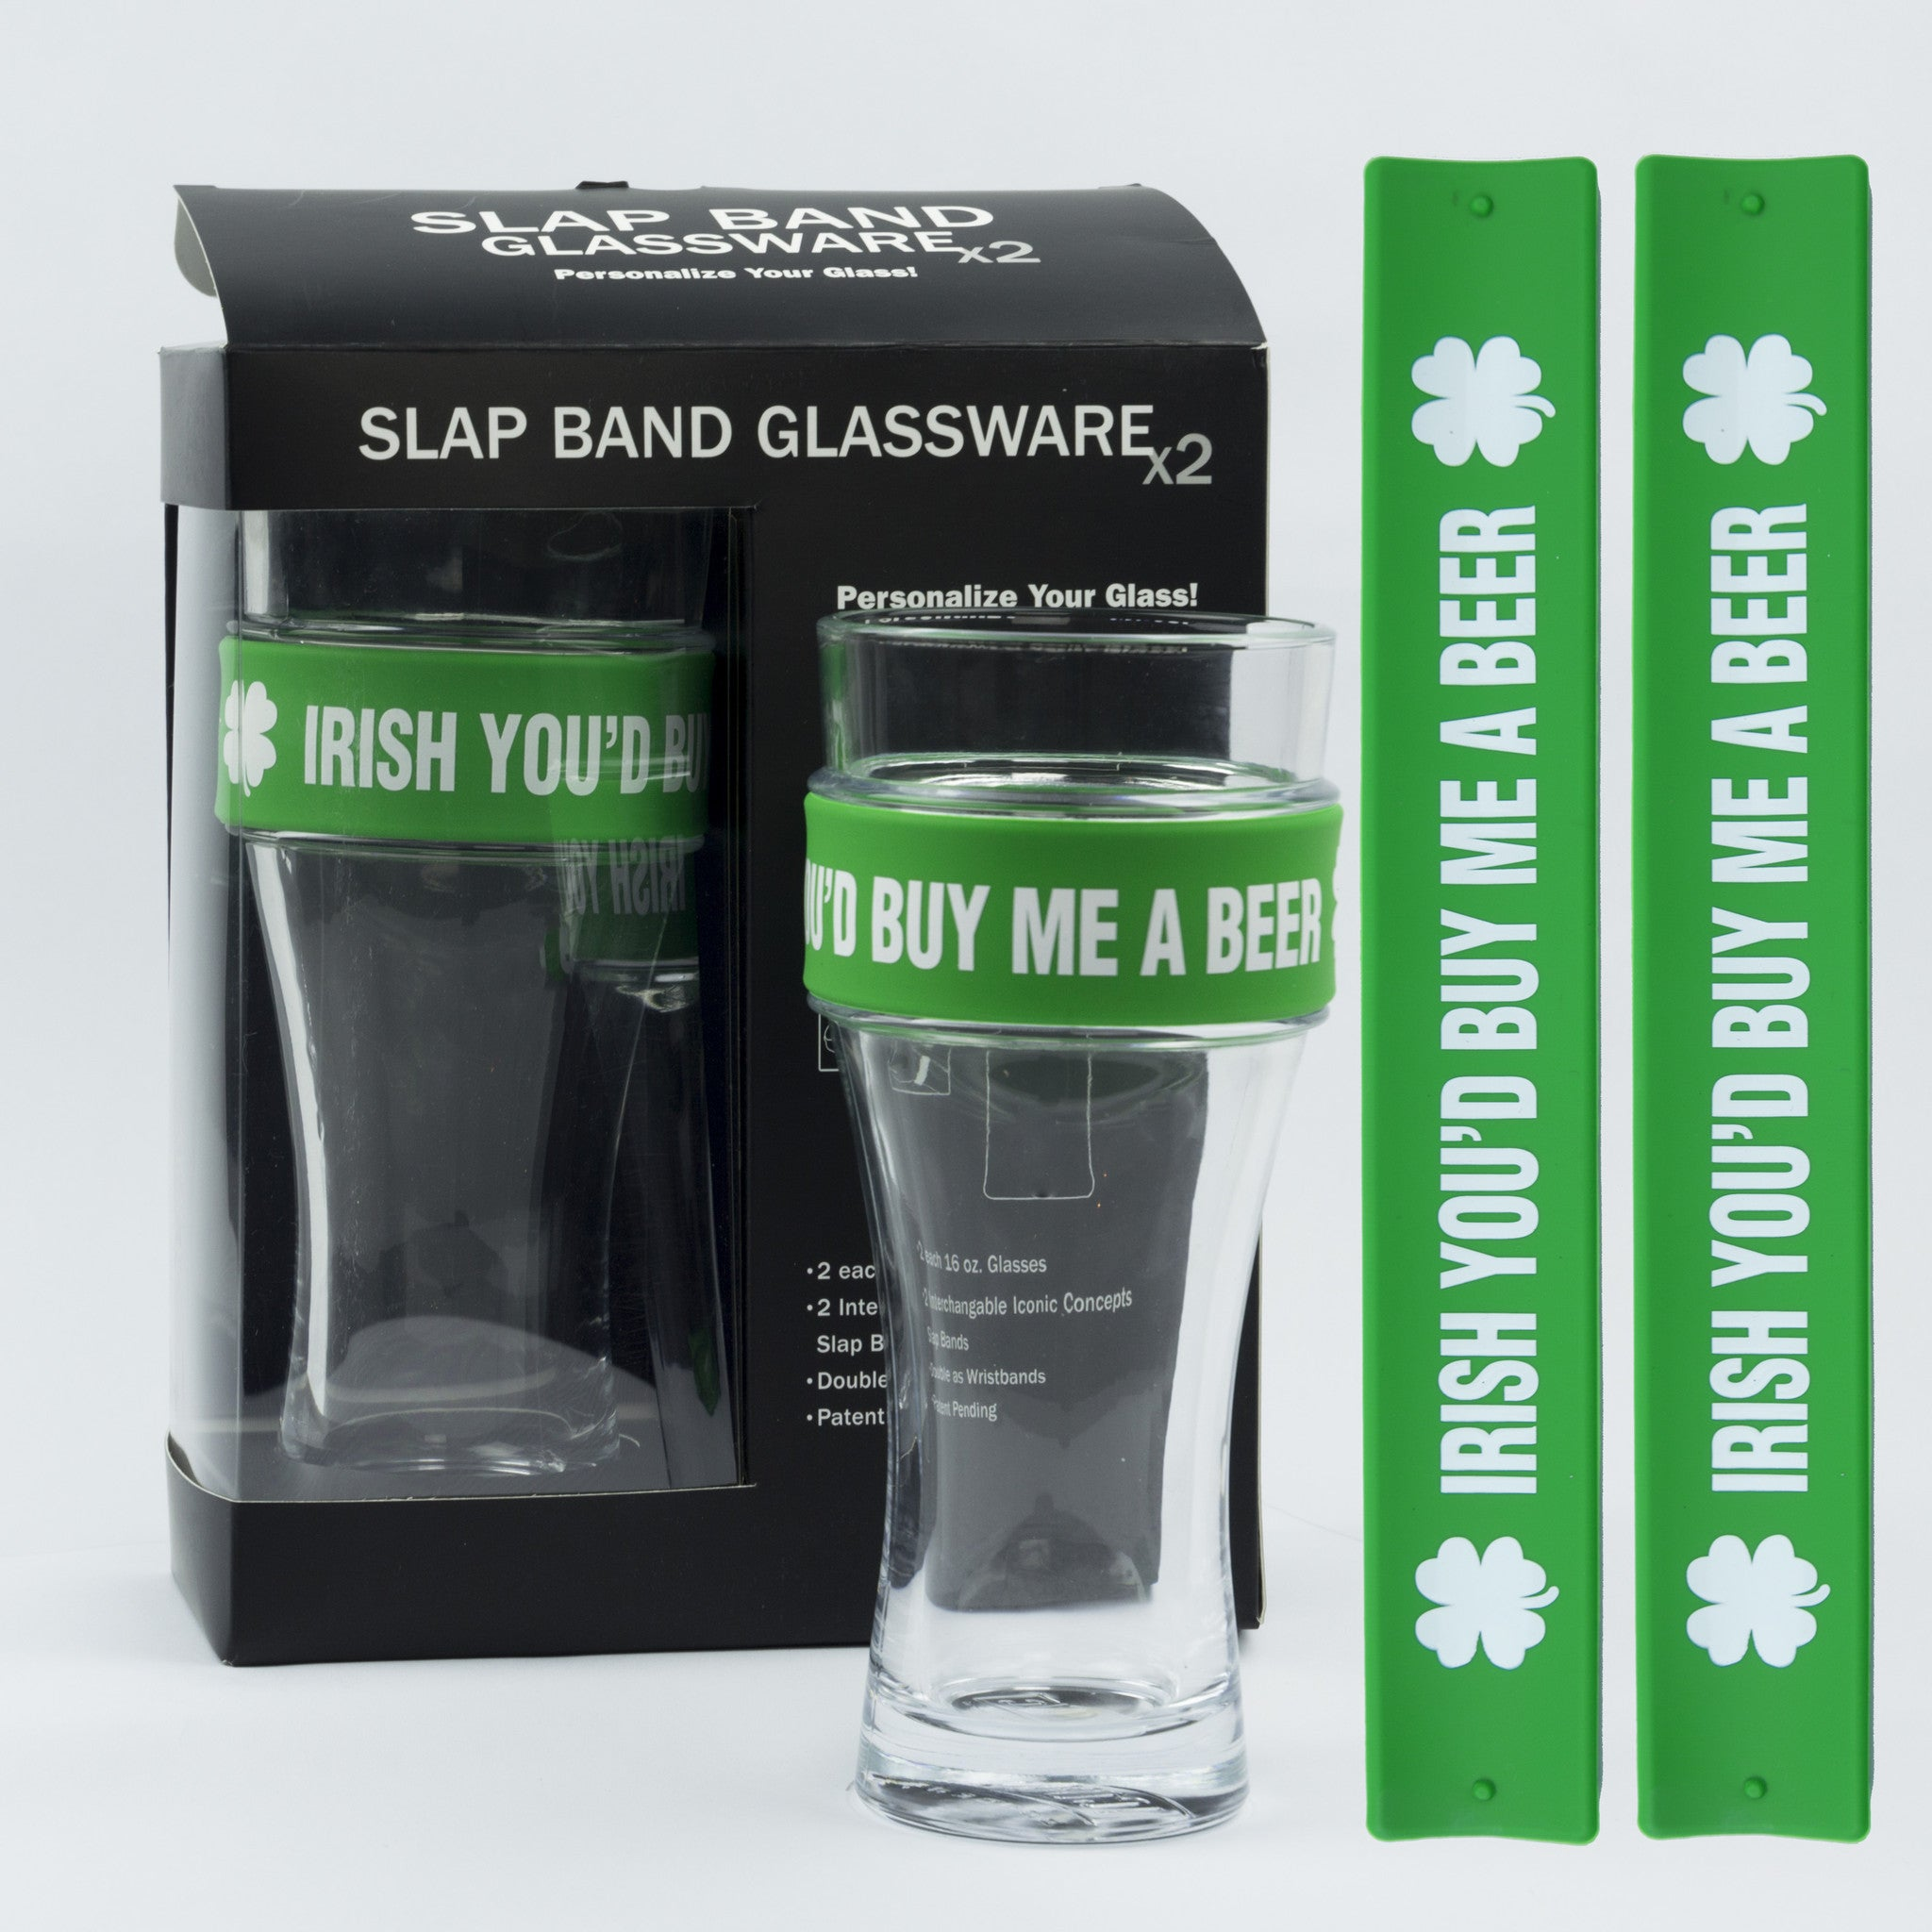 St Patricks Day Slap Band Glassware - Irish You'd Buy Me A Beer